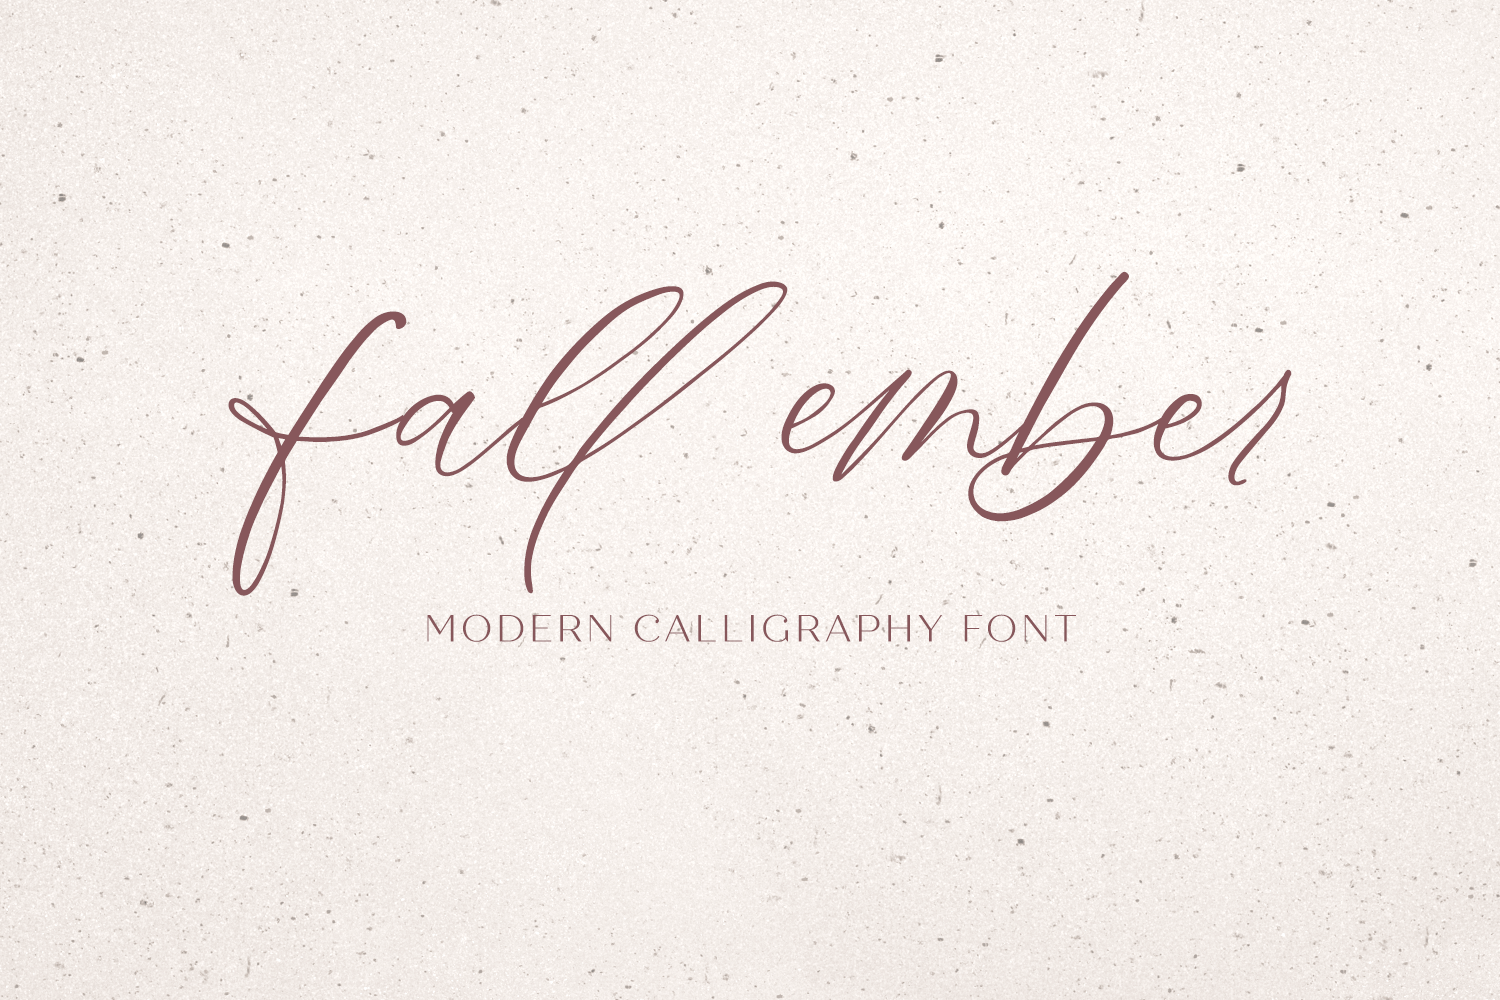 Download Free Fall Ember Font By Beckmccormick Creative Fabrica for Cricut Explore, Silhouette and other cutting machines.